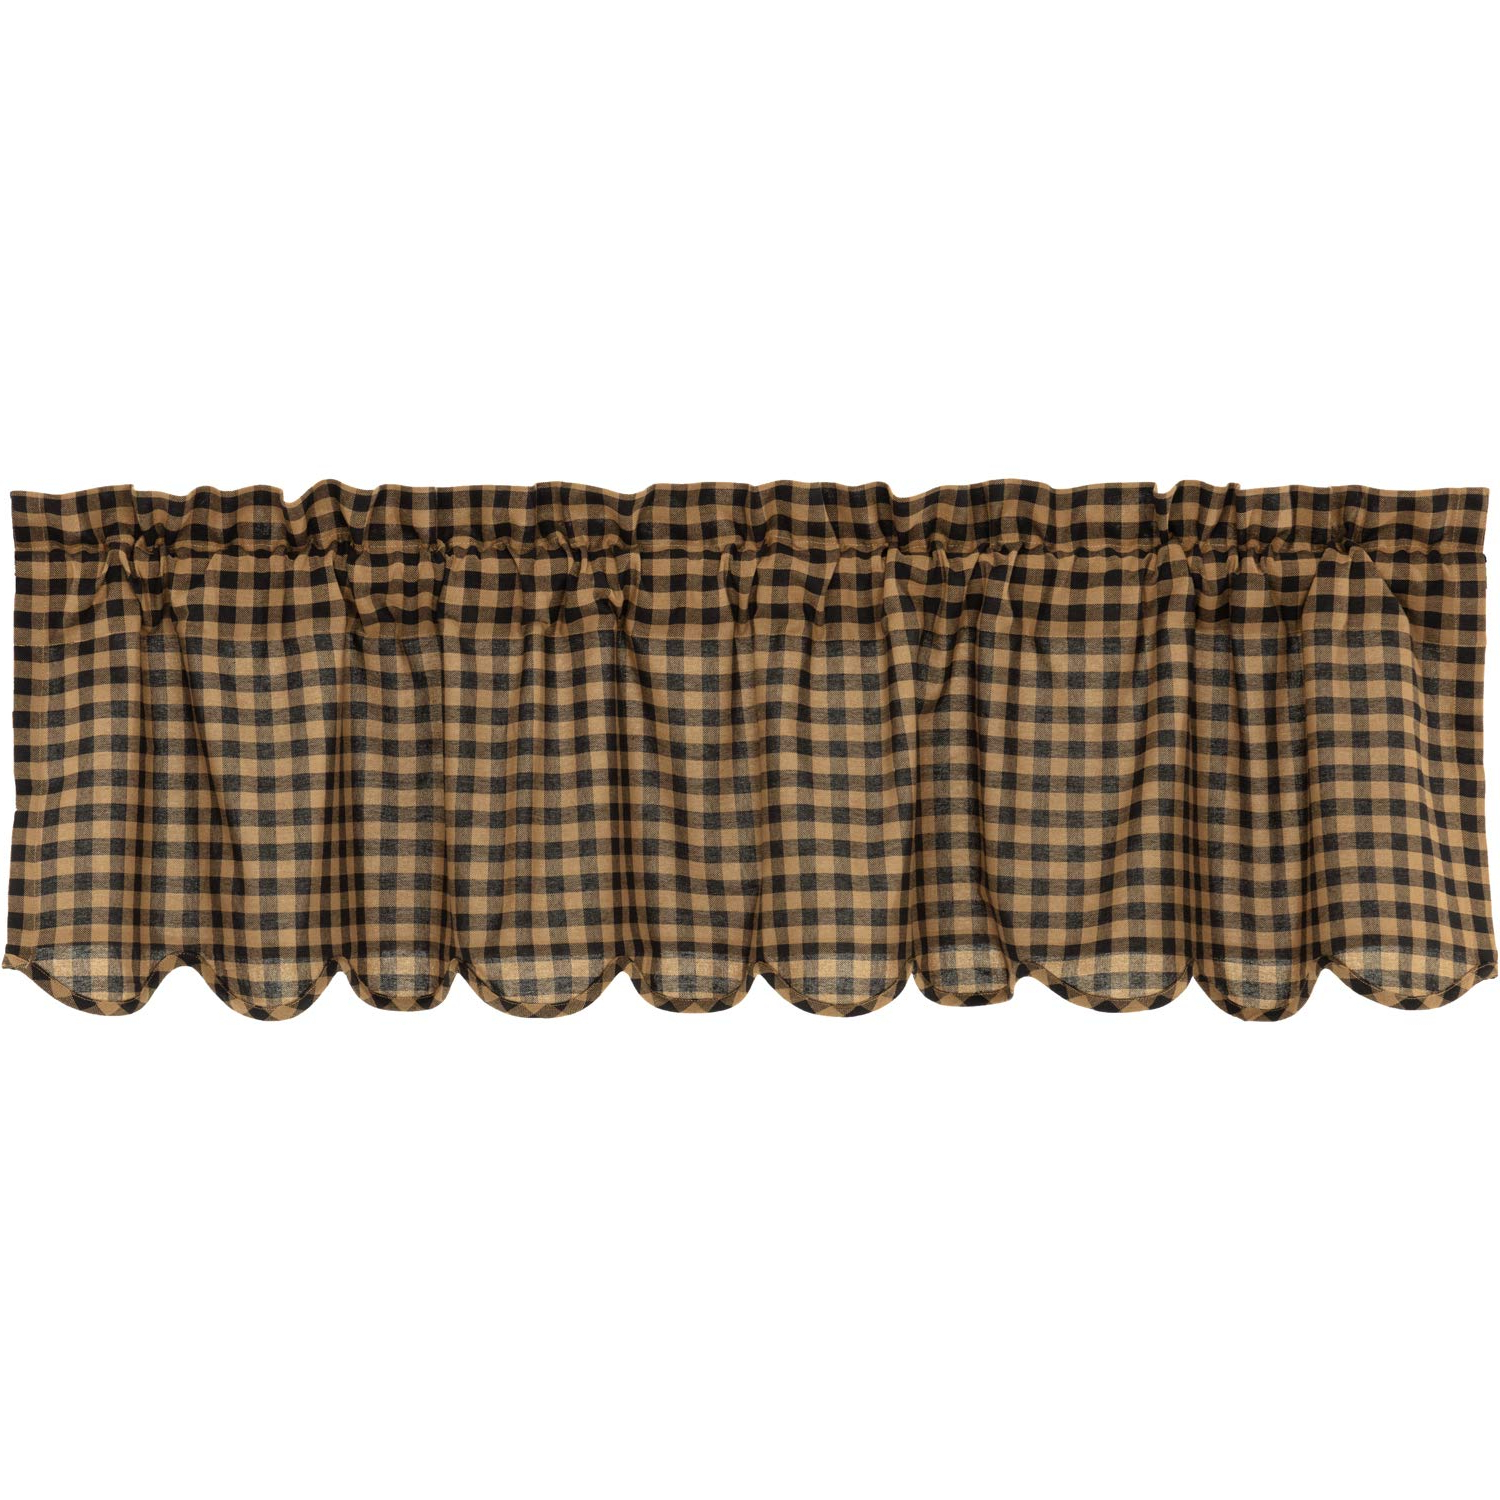 Fashionable Vhc Brands Primitive Kitchen Curtains Black Rod Pocket Cotton Check 16X60  Valance, Raven Intended For Primitive Kitchen Curtains (Gallery 9 of 20)